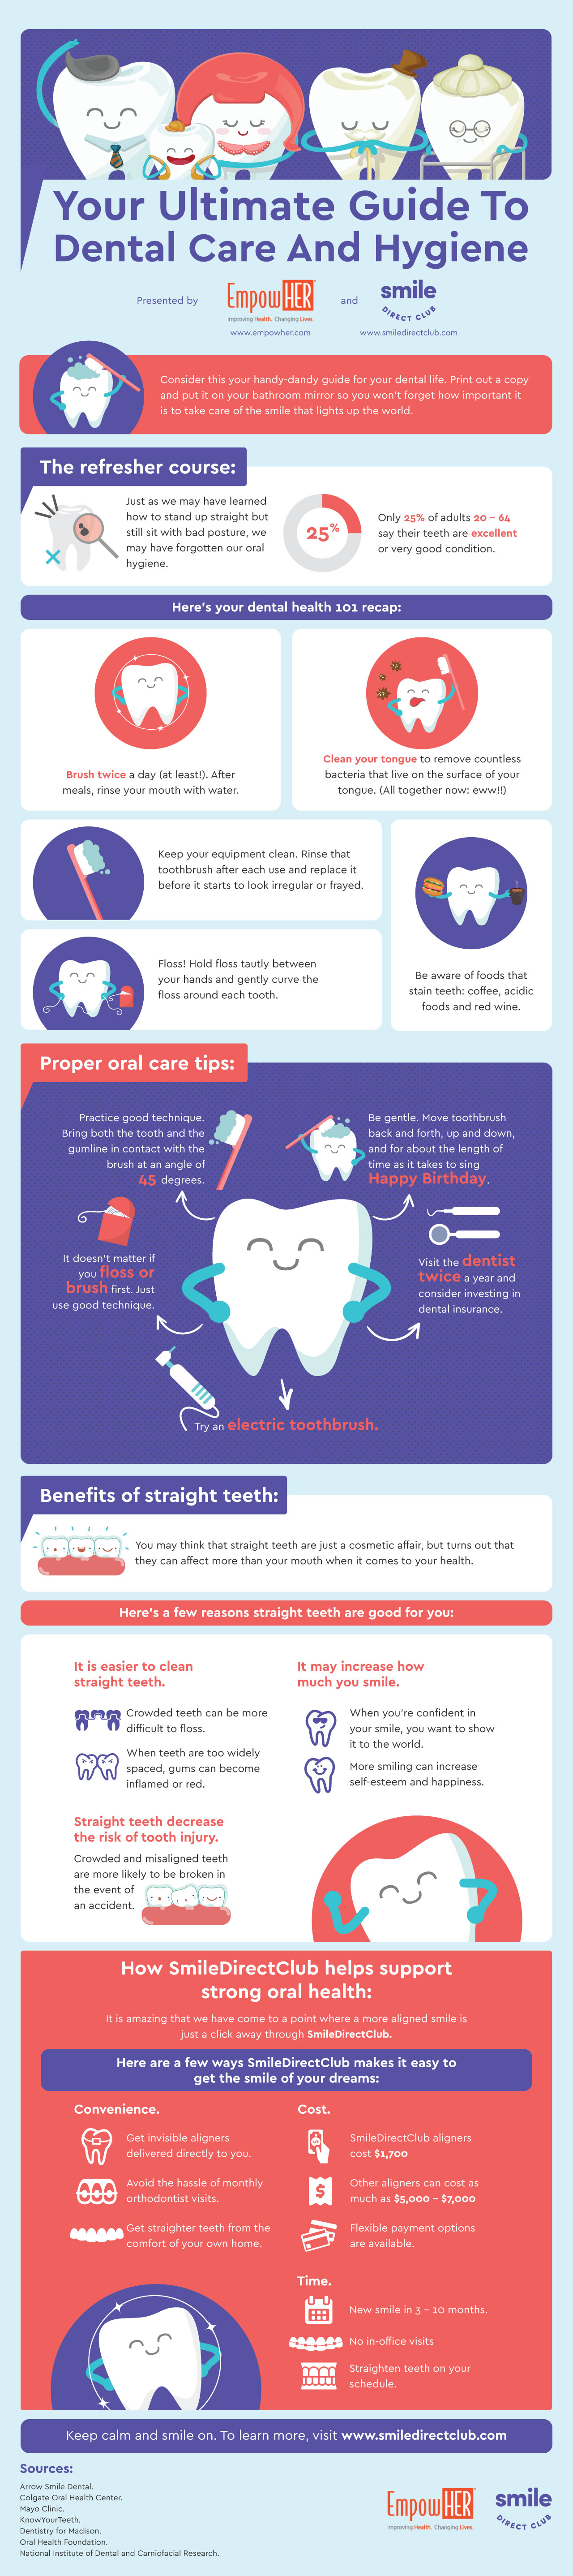 Infographic Your Ultimate Guide to Dental Care and Hygiene